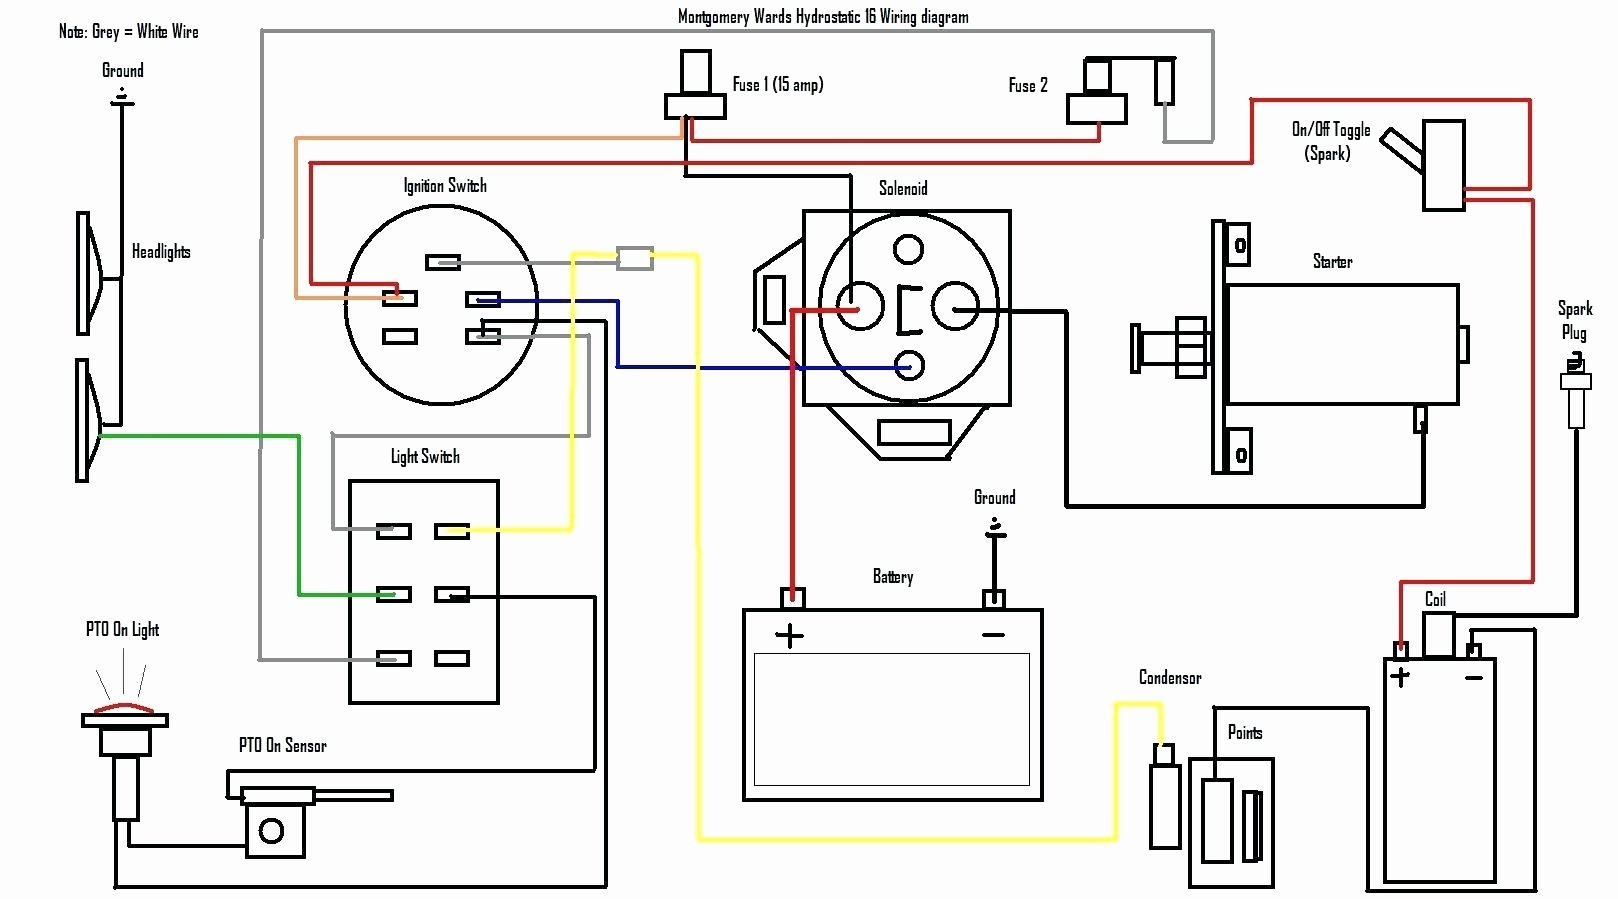 Free Briggs And Stratton Starter Solenoid Wiring Diagram - Briggs And Stratton Starter Solenoid Wiring Diagram